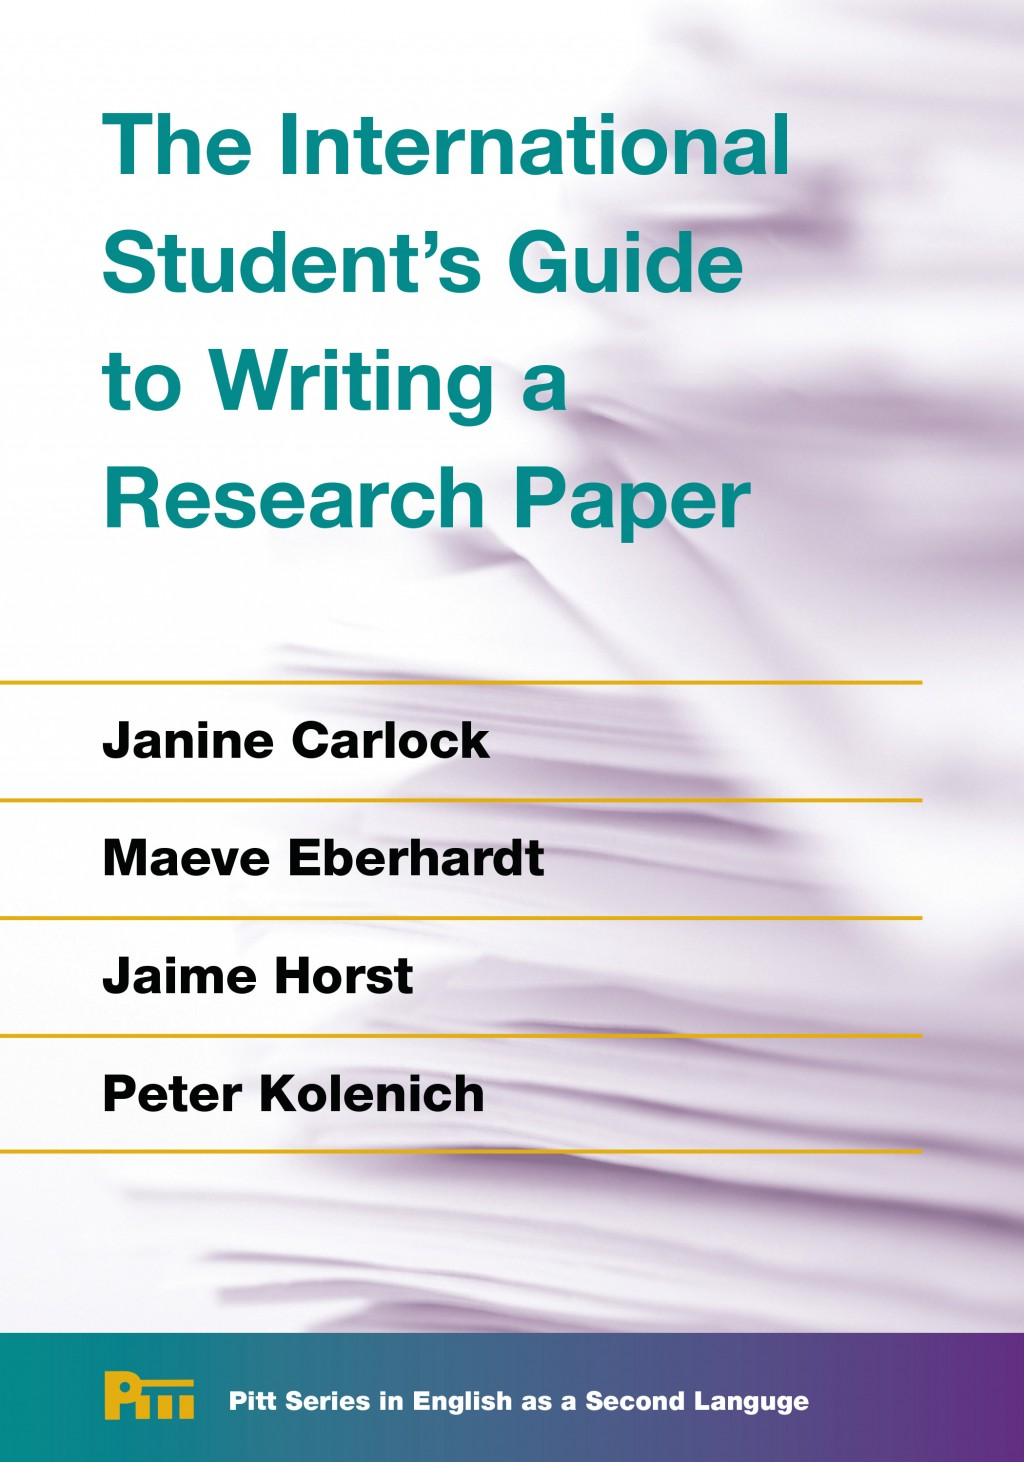 013 Research Paper Striking Writing Papers Across The Curriculum Pdf 15th Edition Lester Large